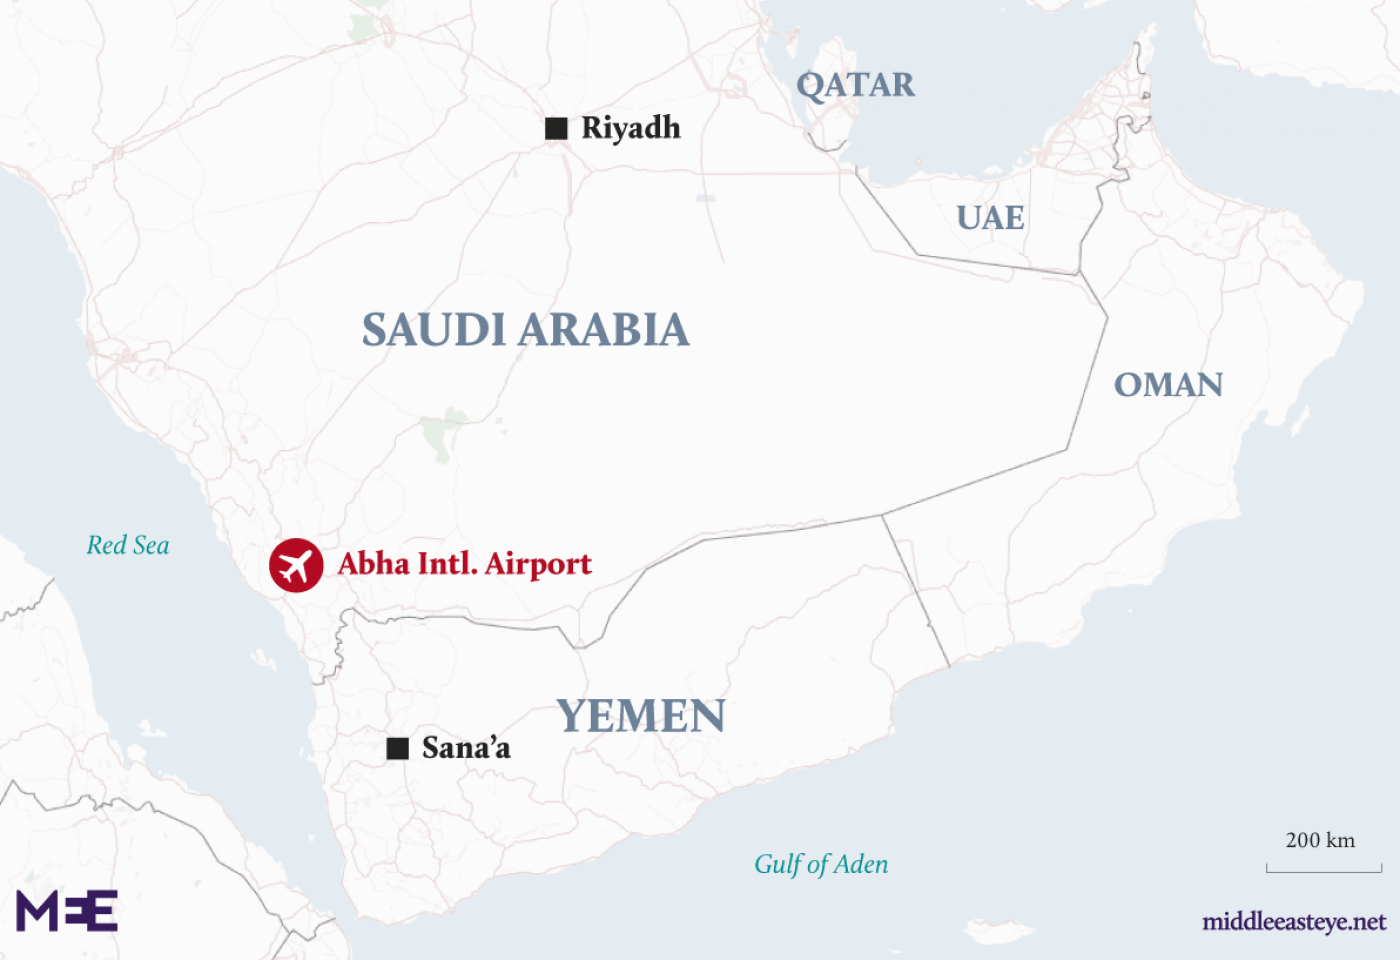 26 hurt in Houthi attack on Abha airport: Coalition